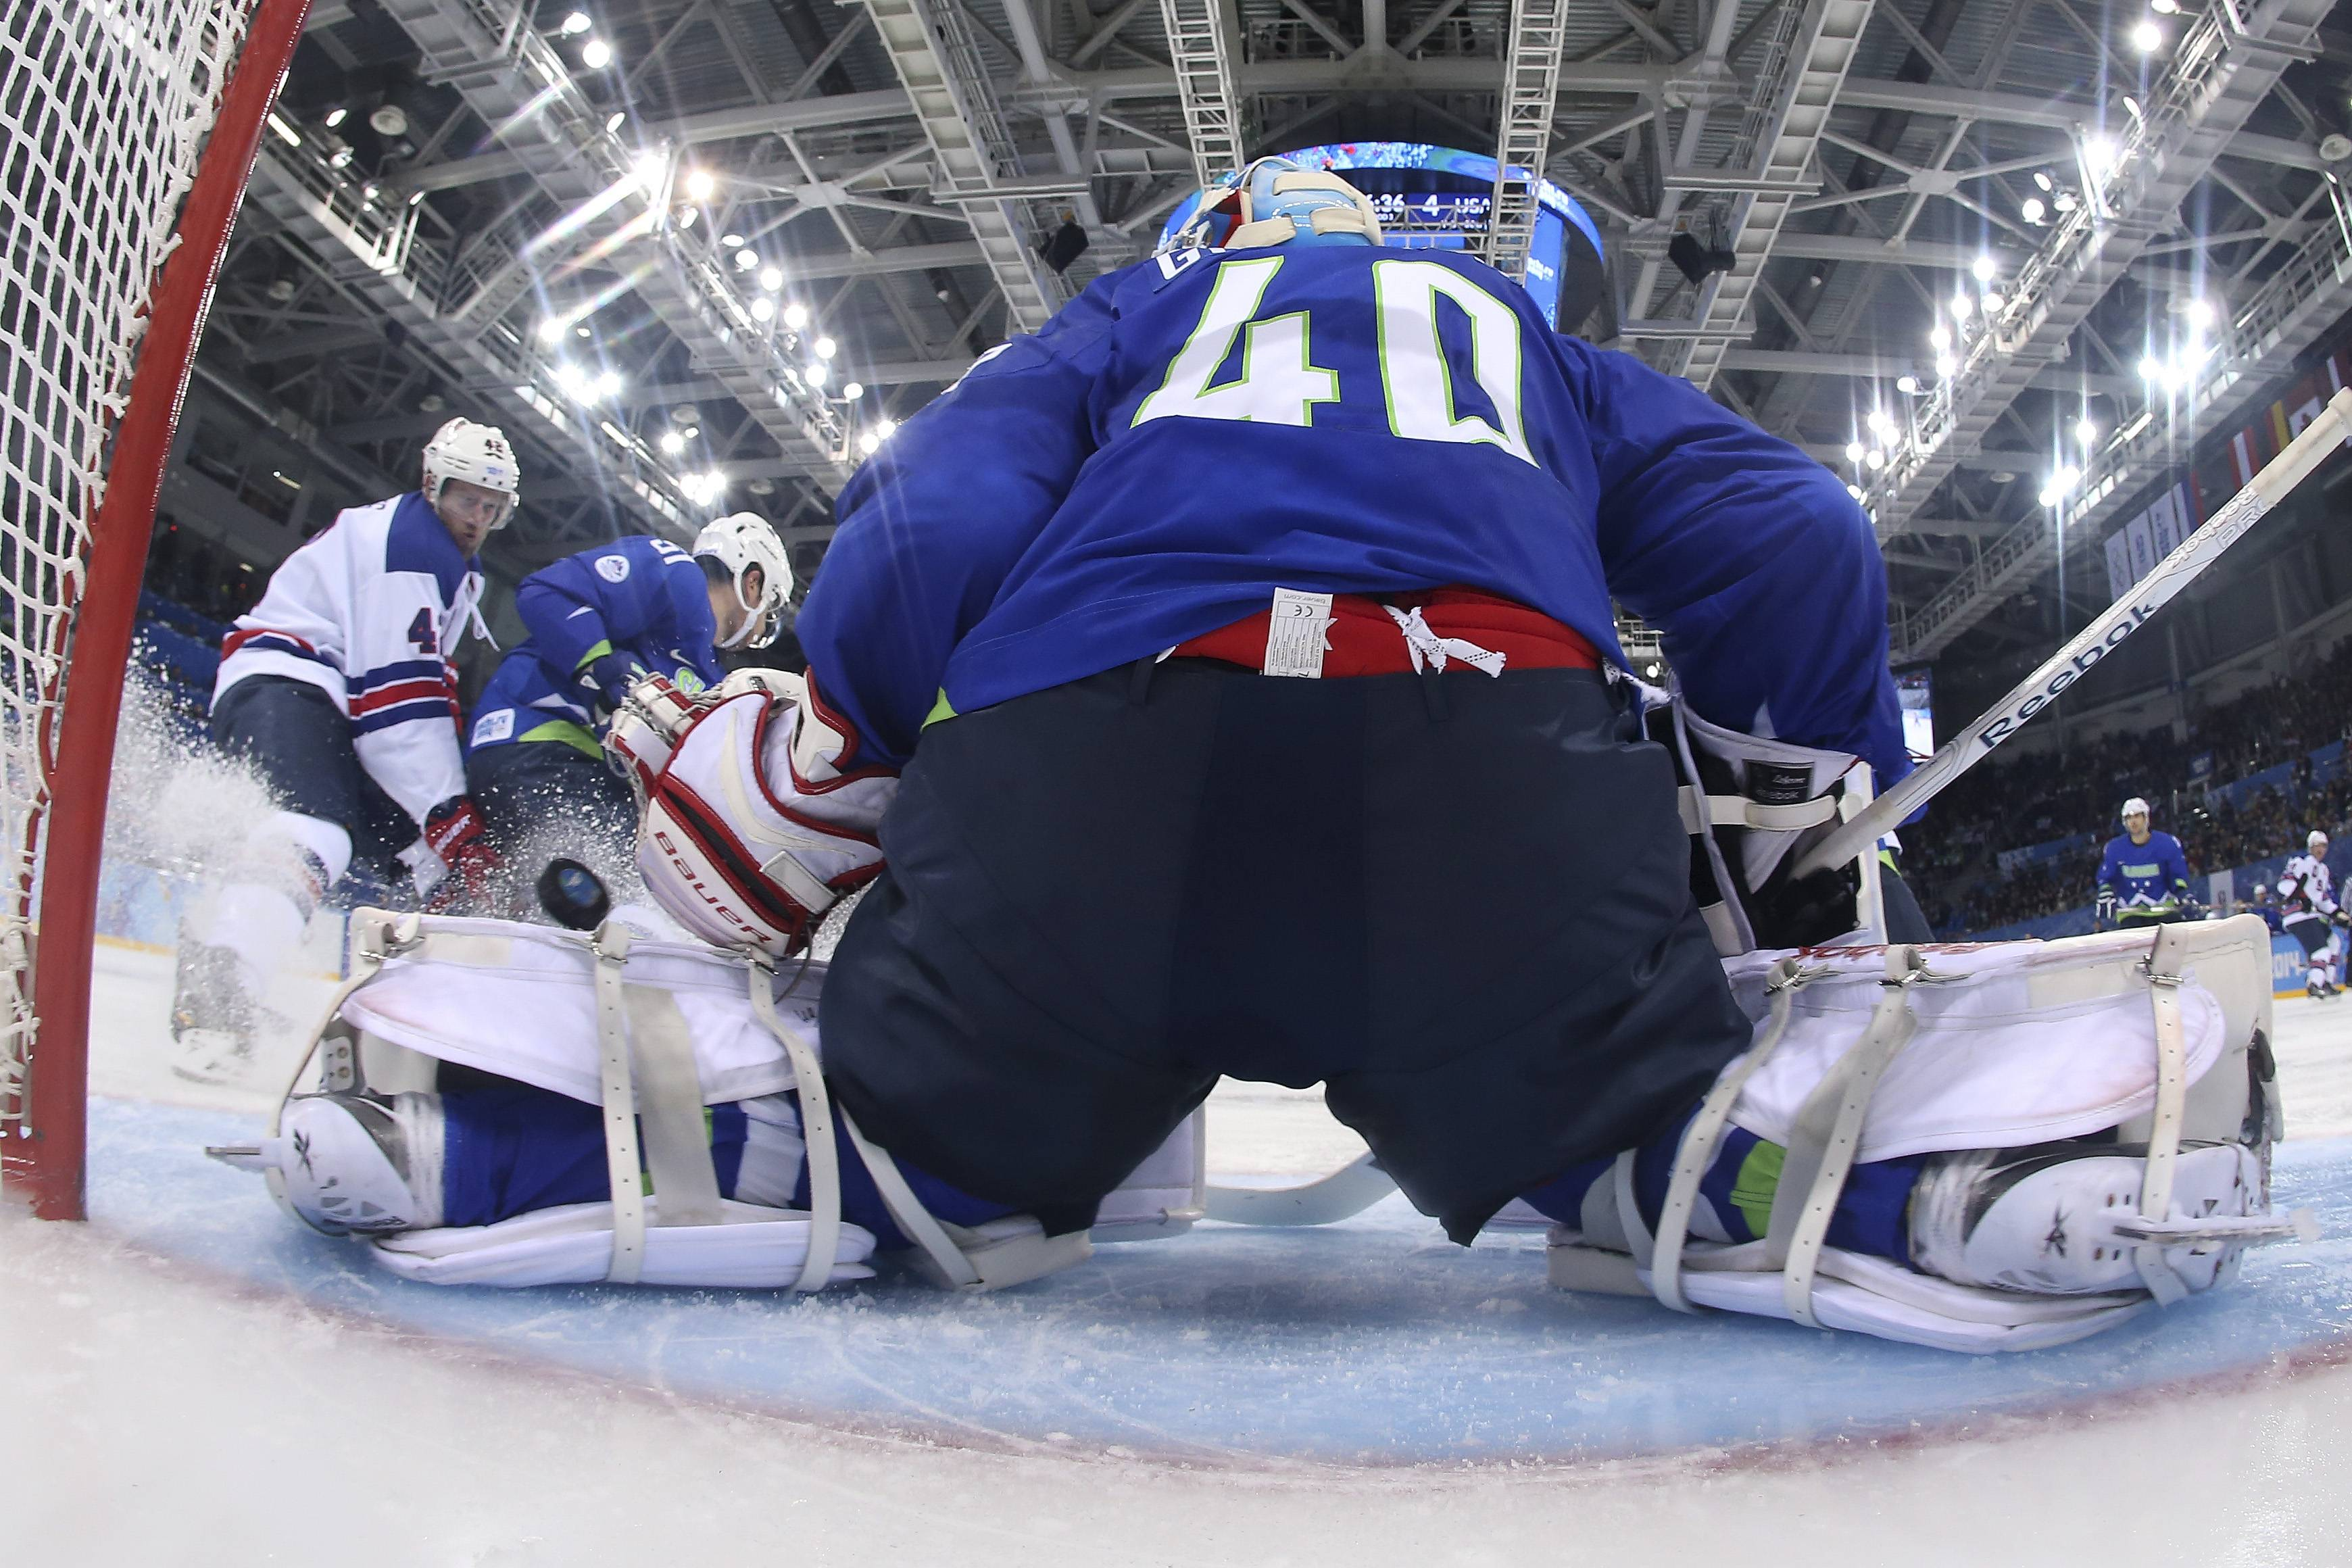 USA forward David Backes, left, fires a goal shot past Slovenia goaltender Luka Gracnar during the third period of a men's ice hockey game at the 2014 Winter Olympics, Sunday, Feb. 16, 2014, in Sochi, Russia. USA defeated Slovenia 5-1.